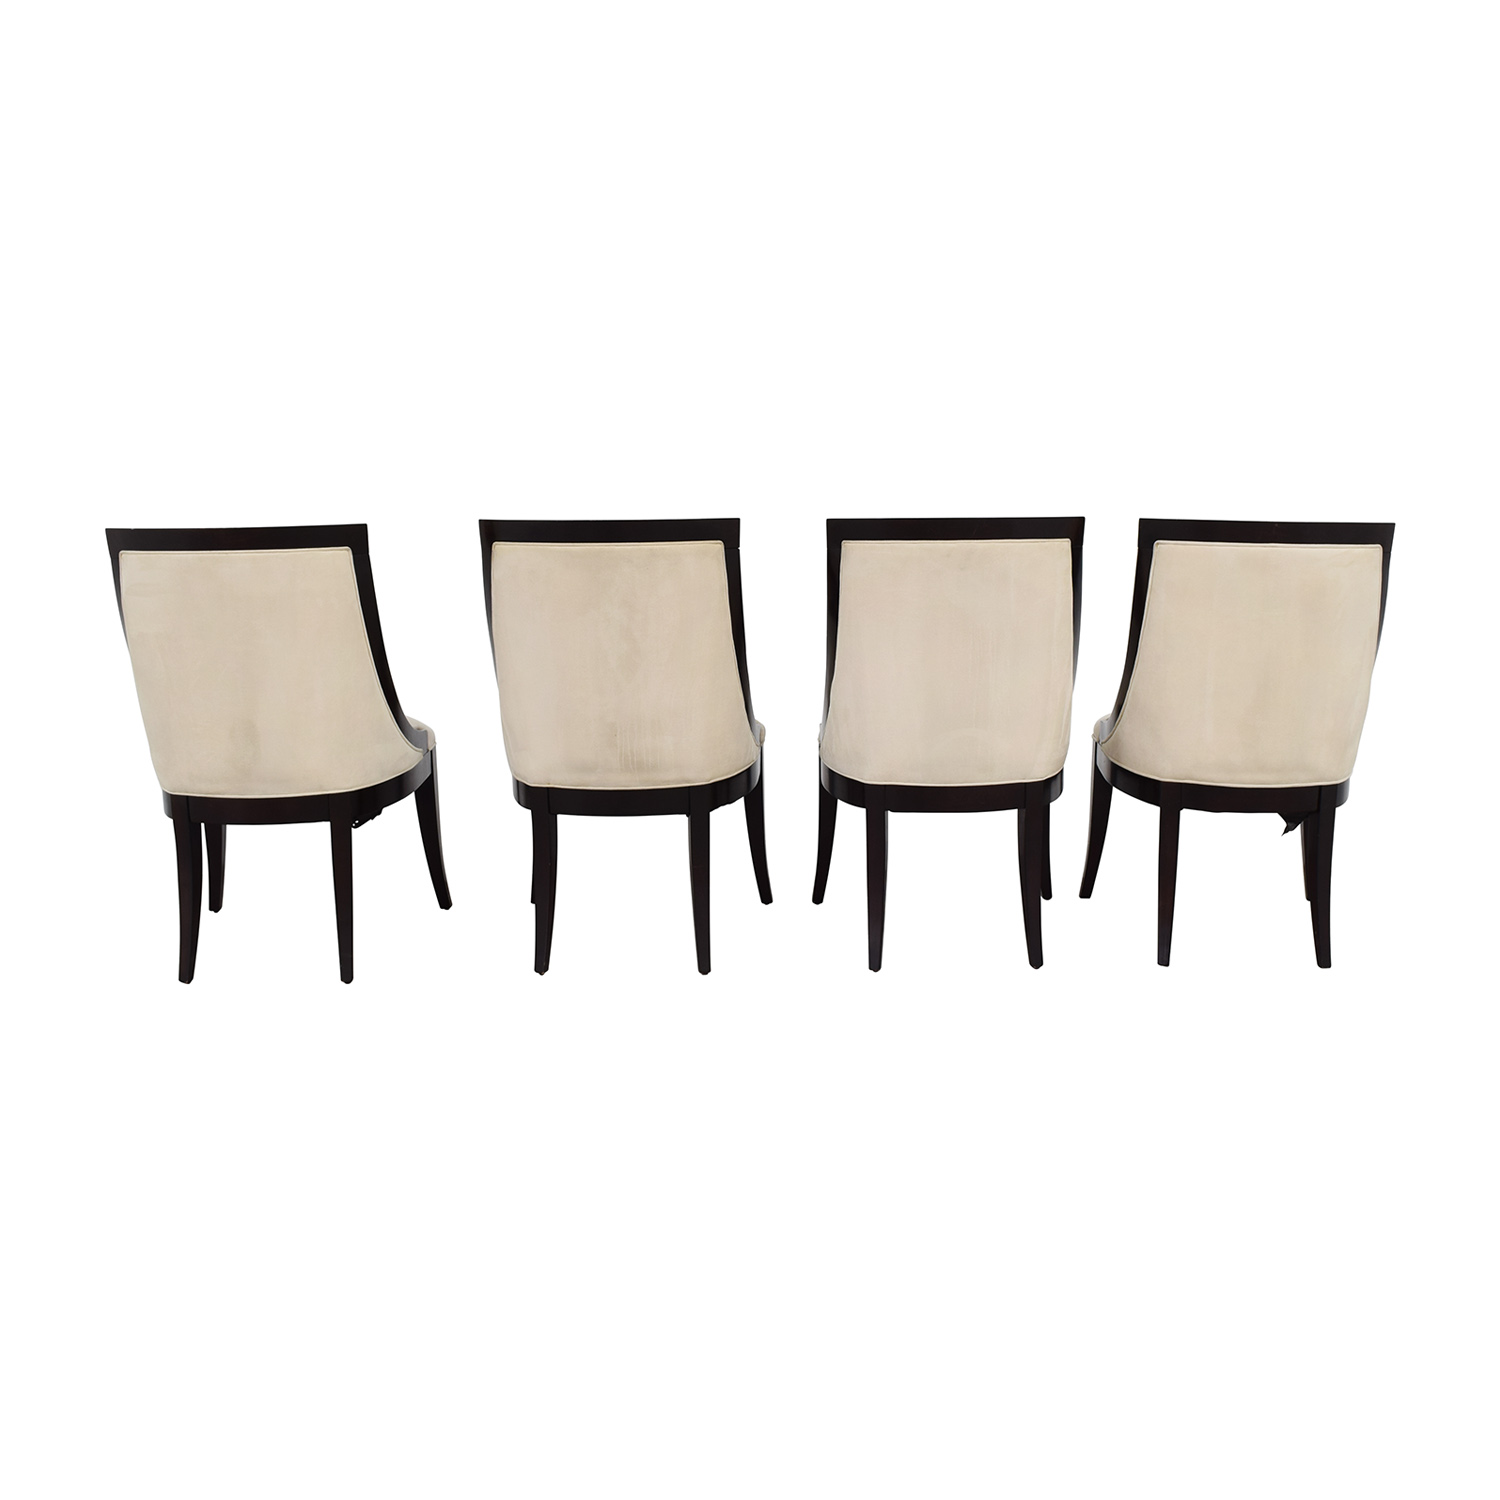 cream upholstered dining chairs porch rocking black 70 off restoration hardware